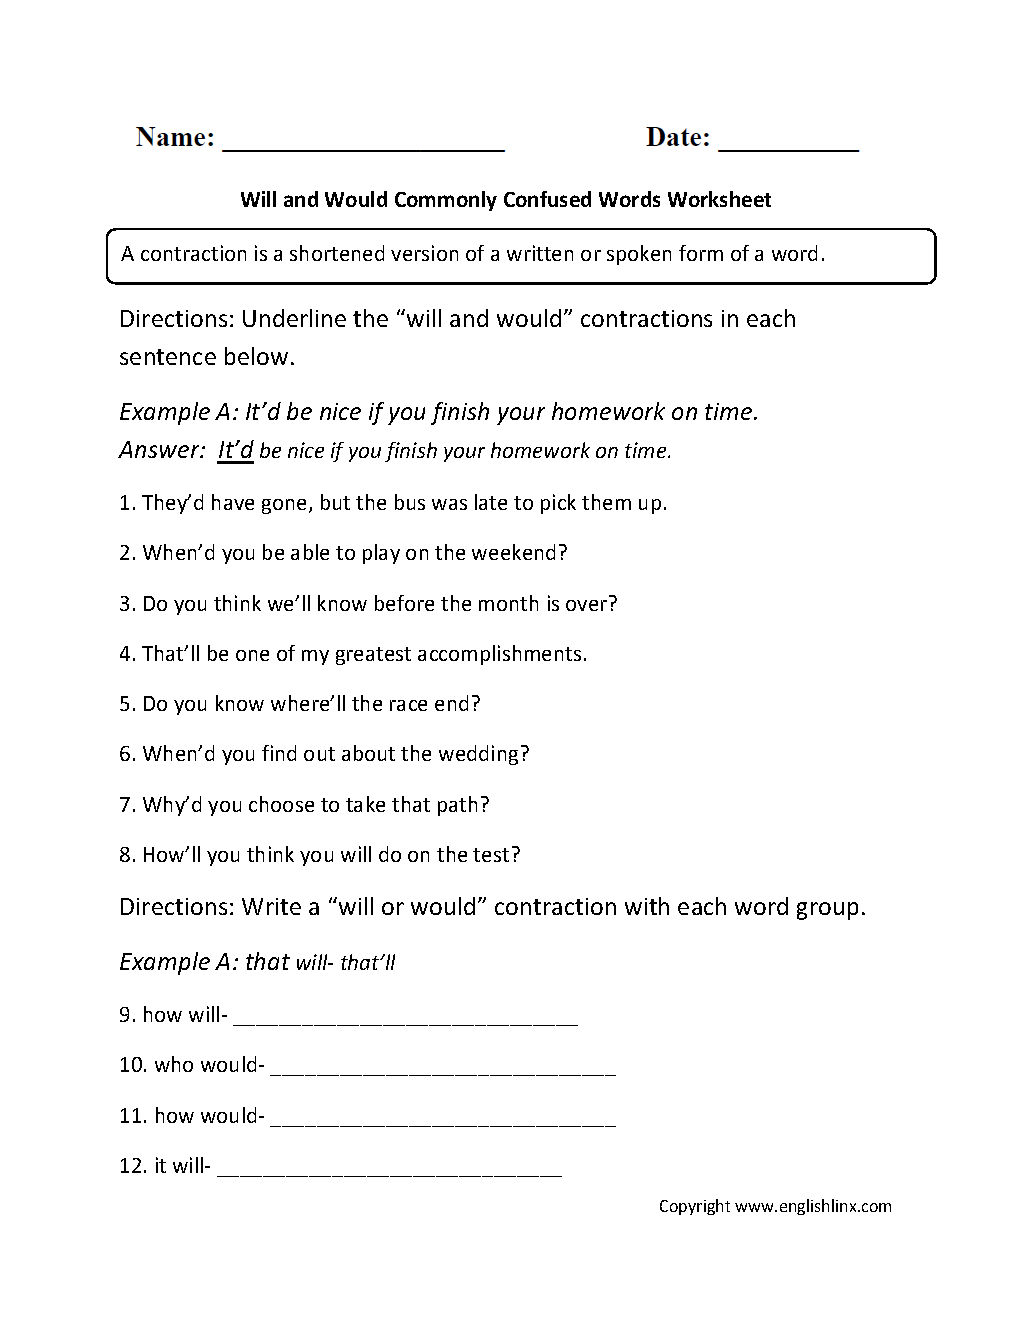 worksheet Commonly Confused Words Worksheet commonly confused words worksheets will and would worksheets